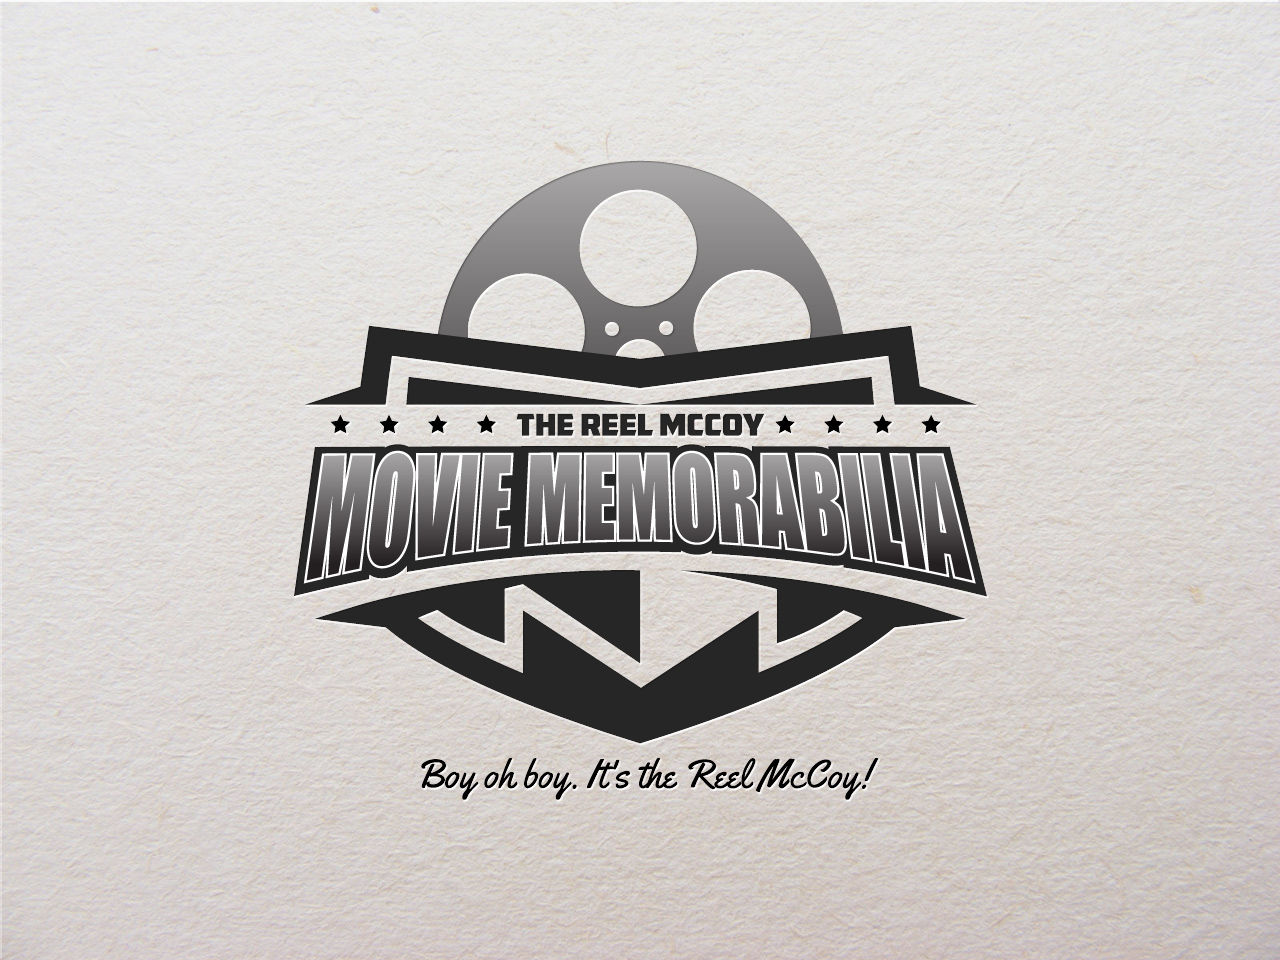 Logo Design by jpbituin - Entry No. 38 in the Logo Design Contest Unique Logo Design Wanted for The Reel McCoy Movie Memorabilia.